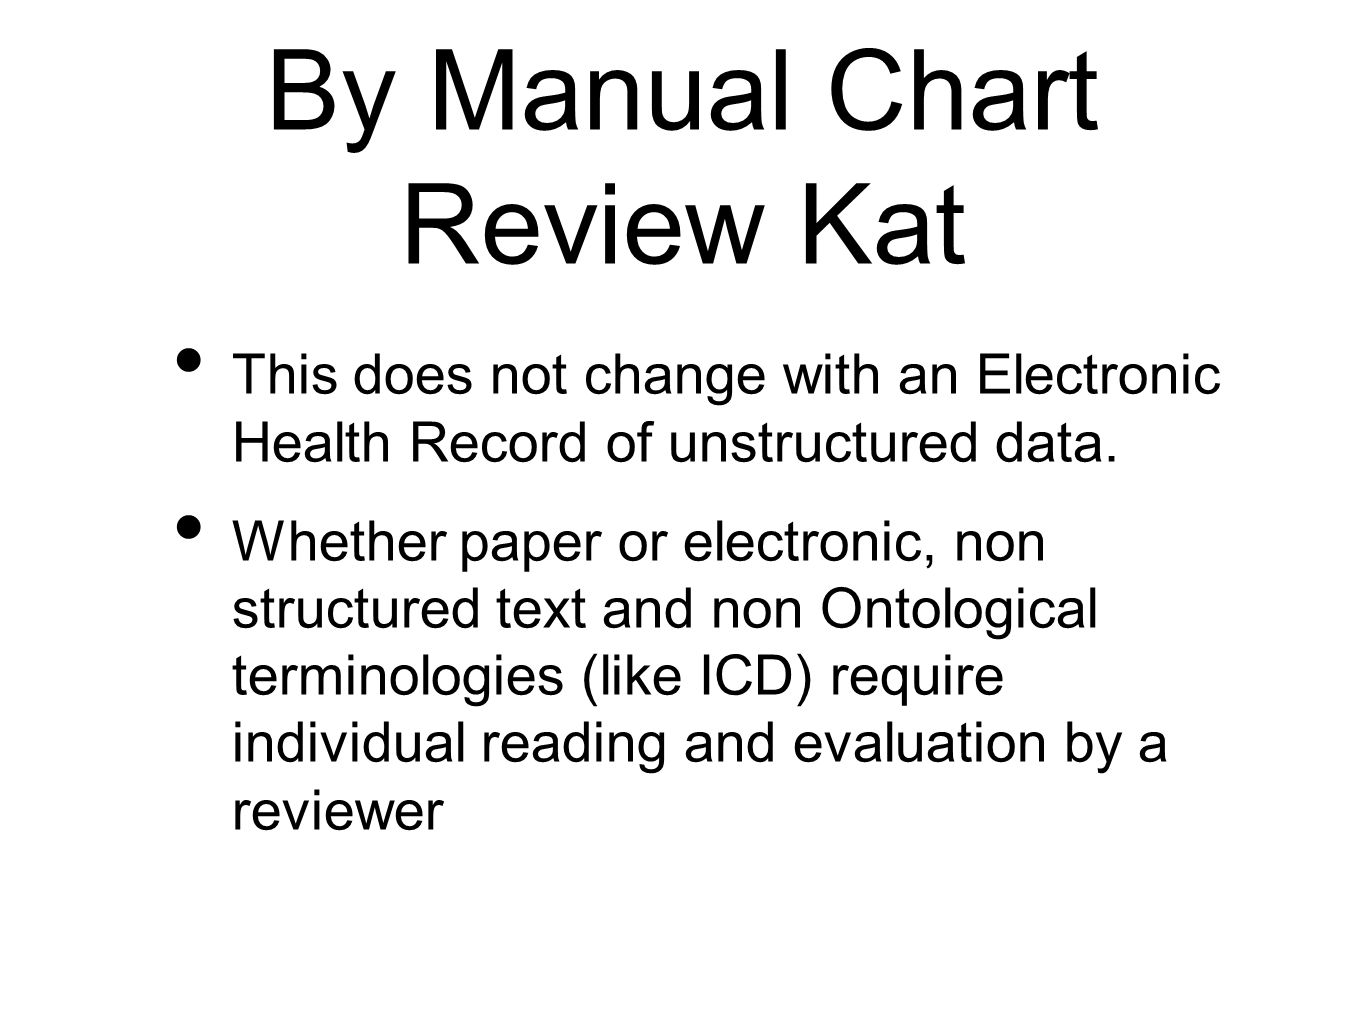 By Manual Chart Review Kat